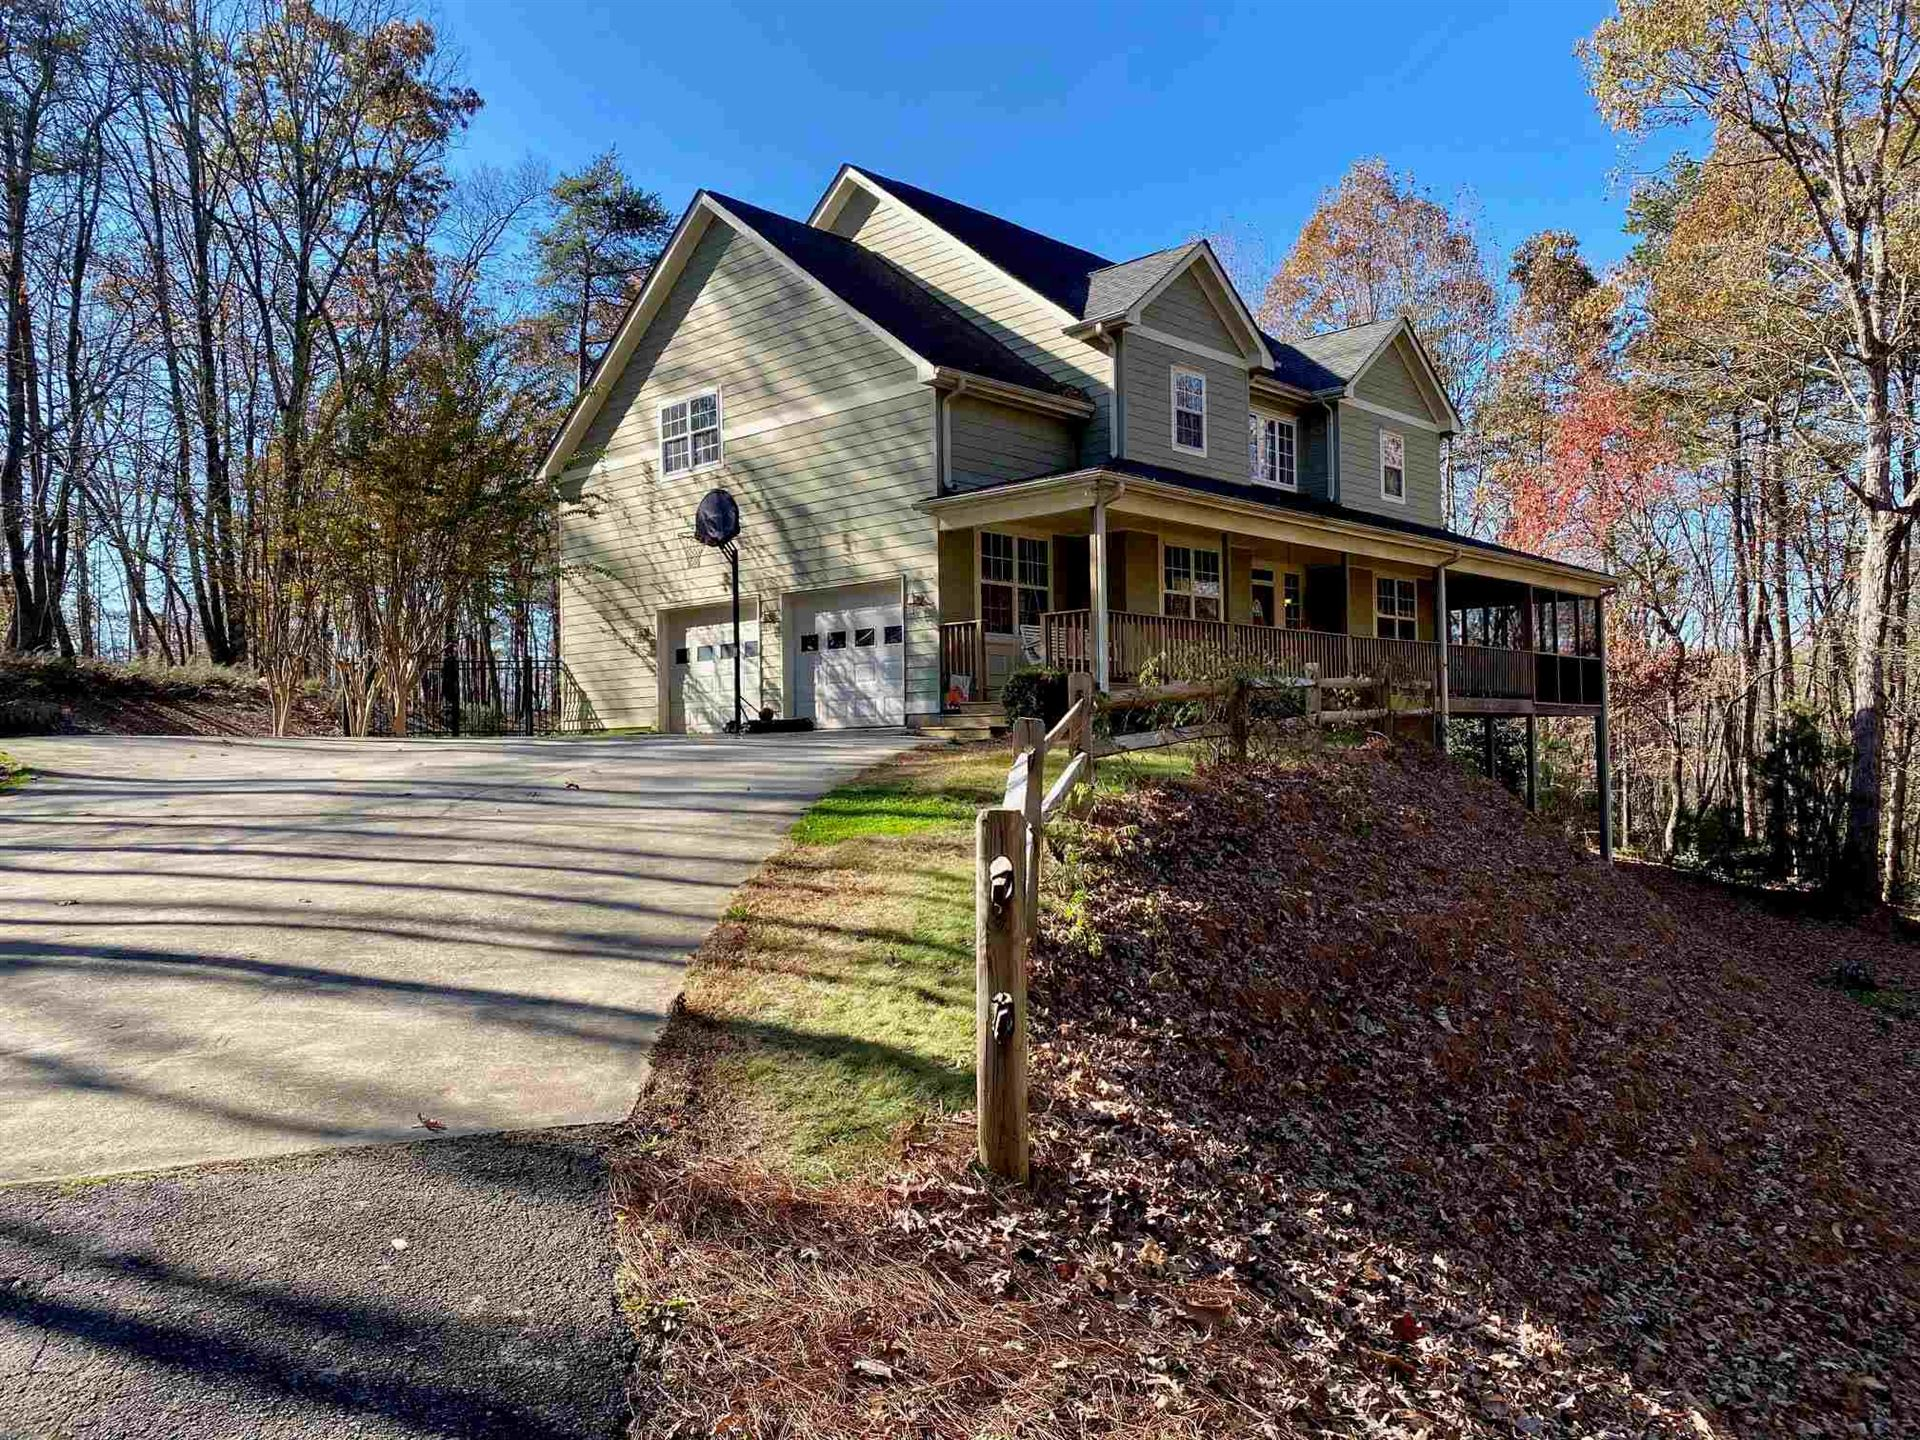 78 Archies Way, Cleveland, GA 30528 - MLS#: 8894085